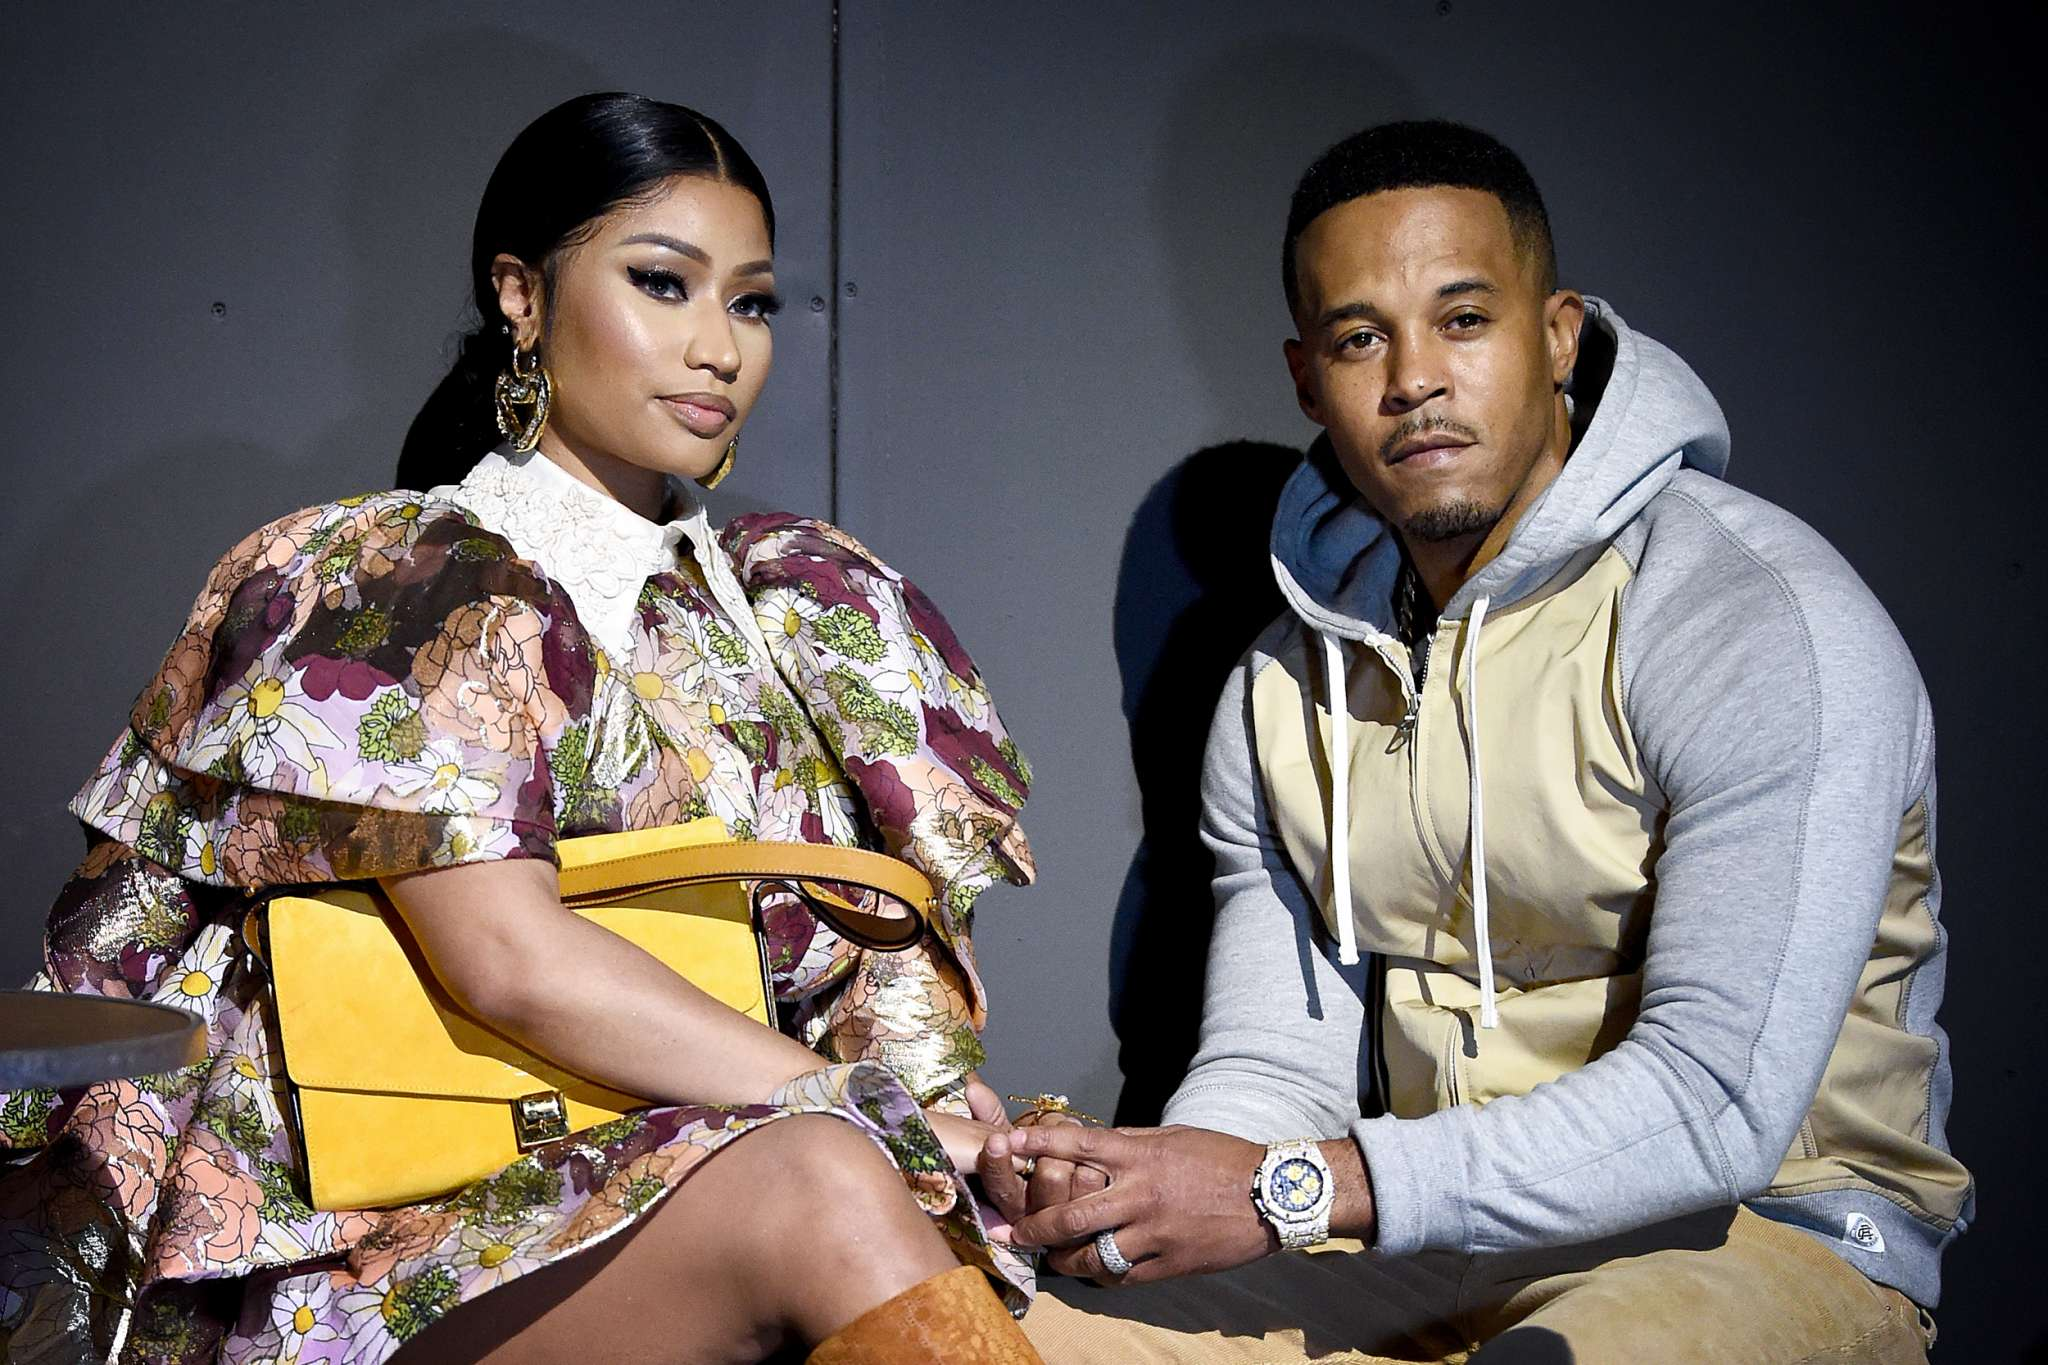 nicki-minajs-family-video-will-make-your-day-check-out-the-sweet-clip-here